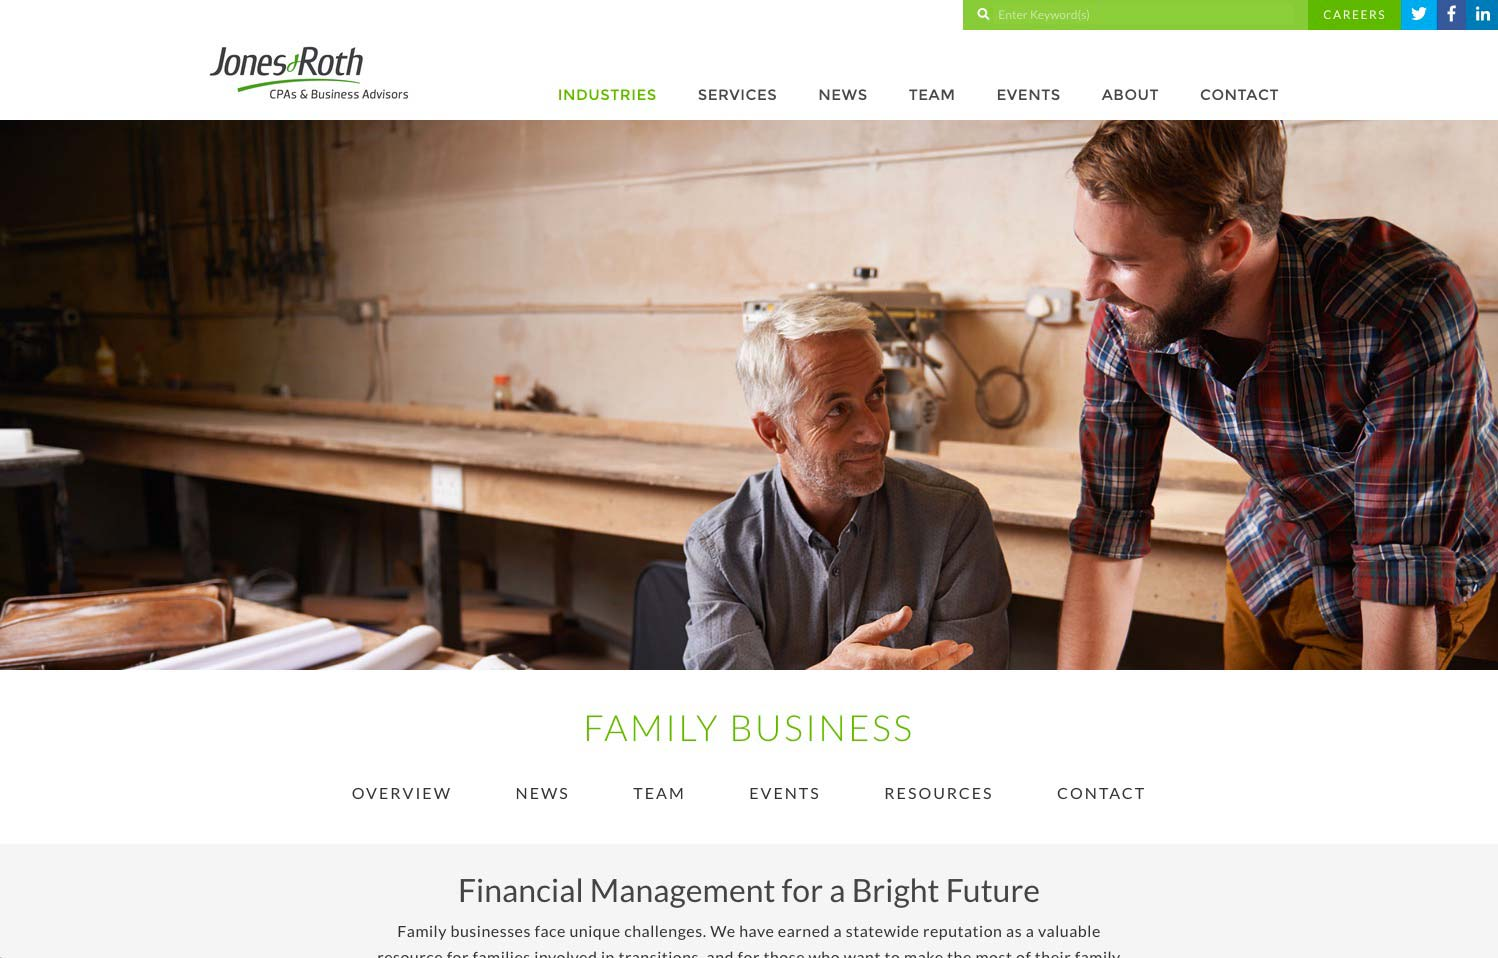 jones and roth family business website